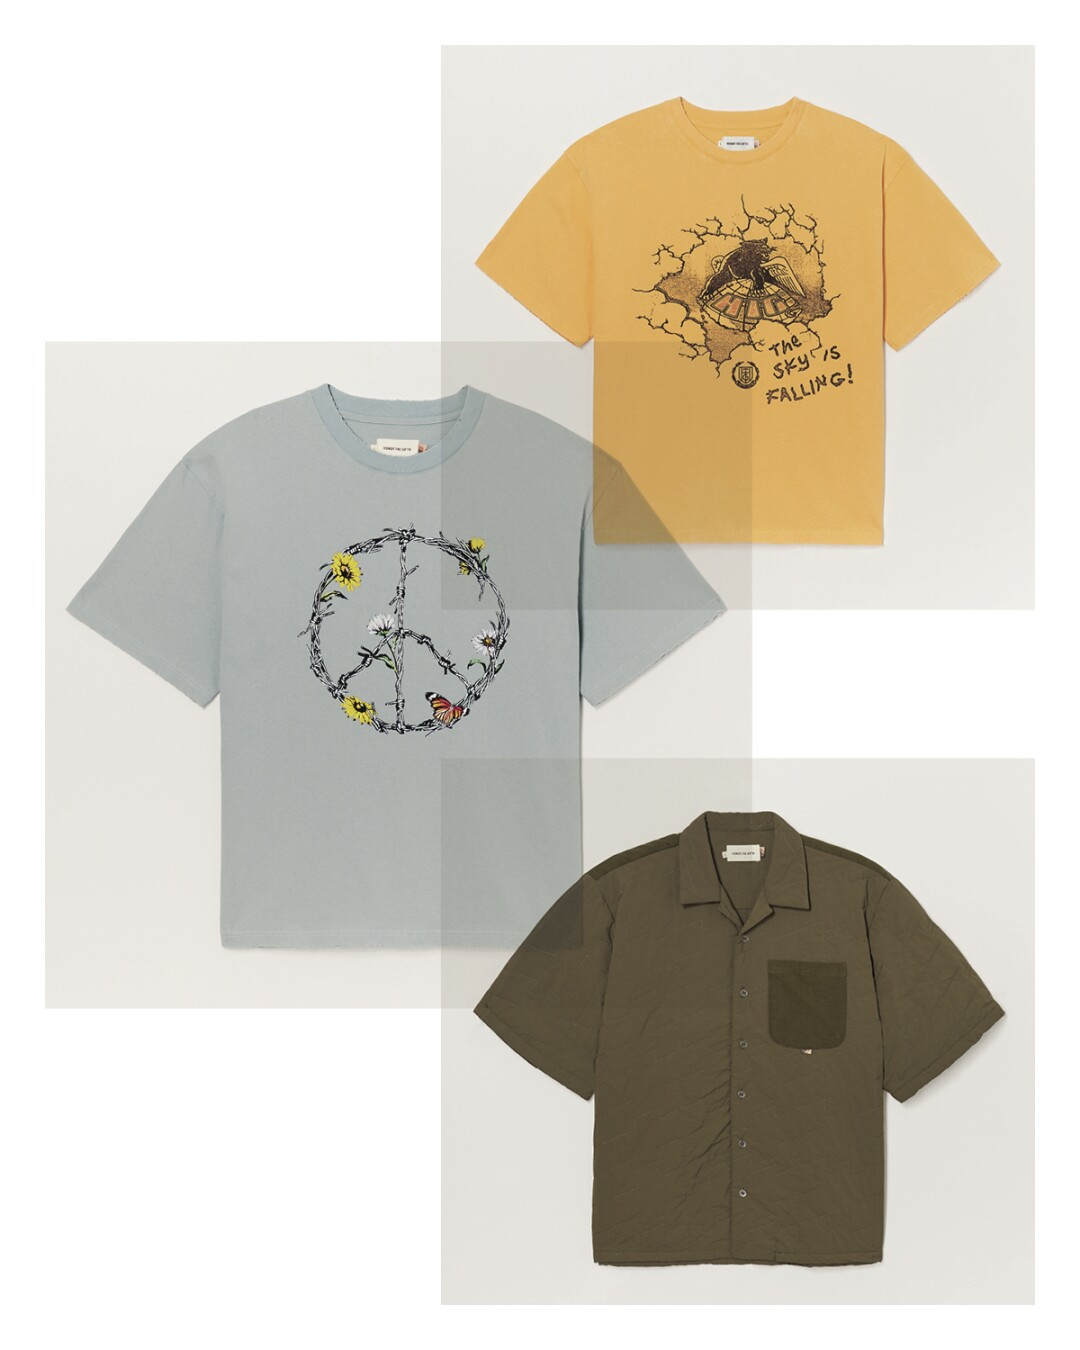 A T-shirt with a peace symbol, a T-shirt that says, 'The Sky's Falling!' and a green collared shirt